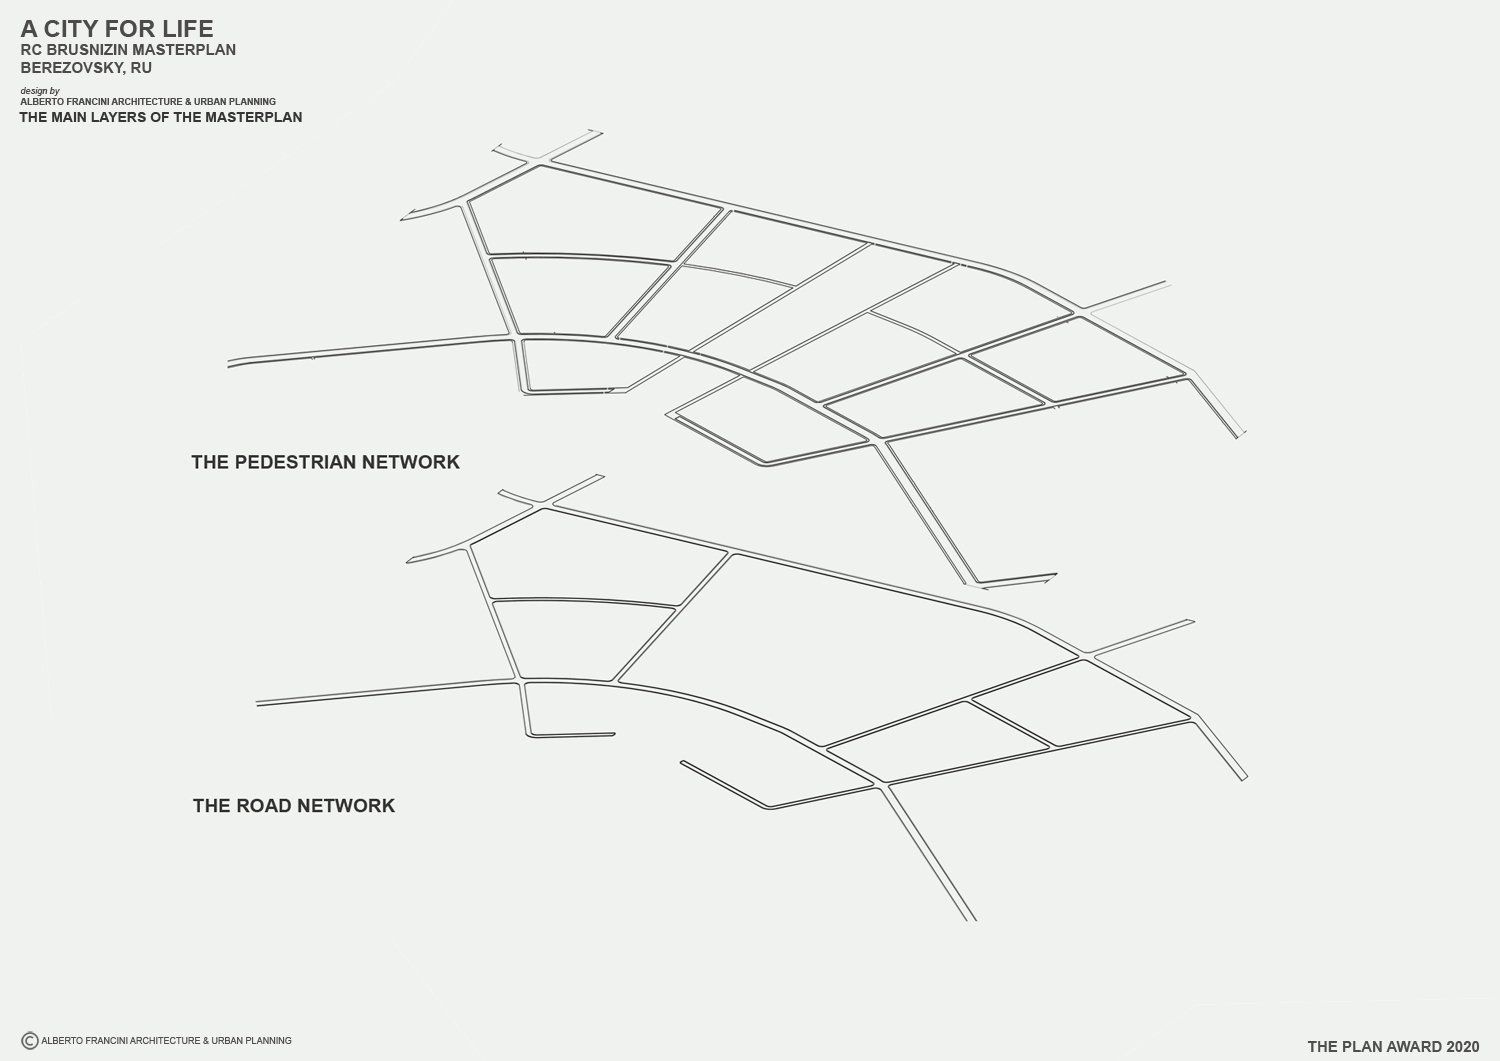 THE MAIN LAYER OF THE MASTERPLAN 1 ALBERTO FRANCINI ARCHITECTURE & URBANPLANNING}